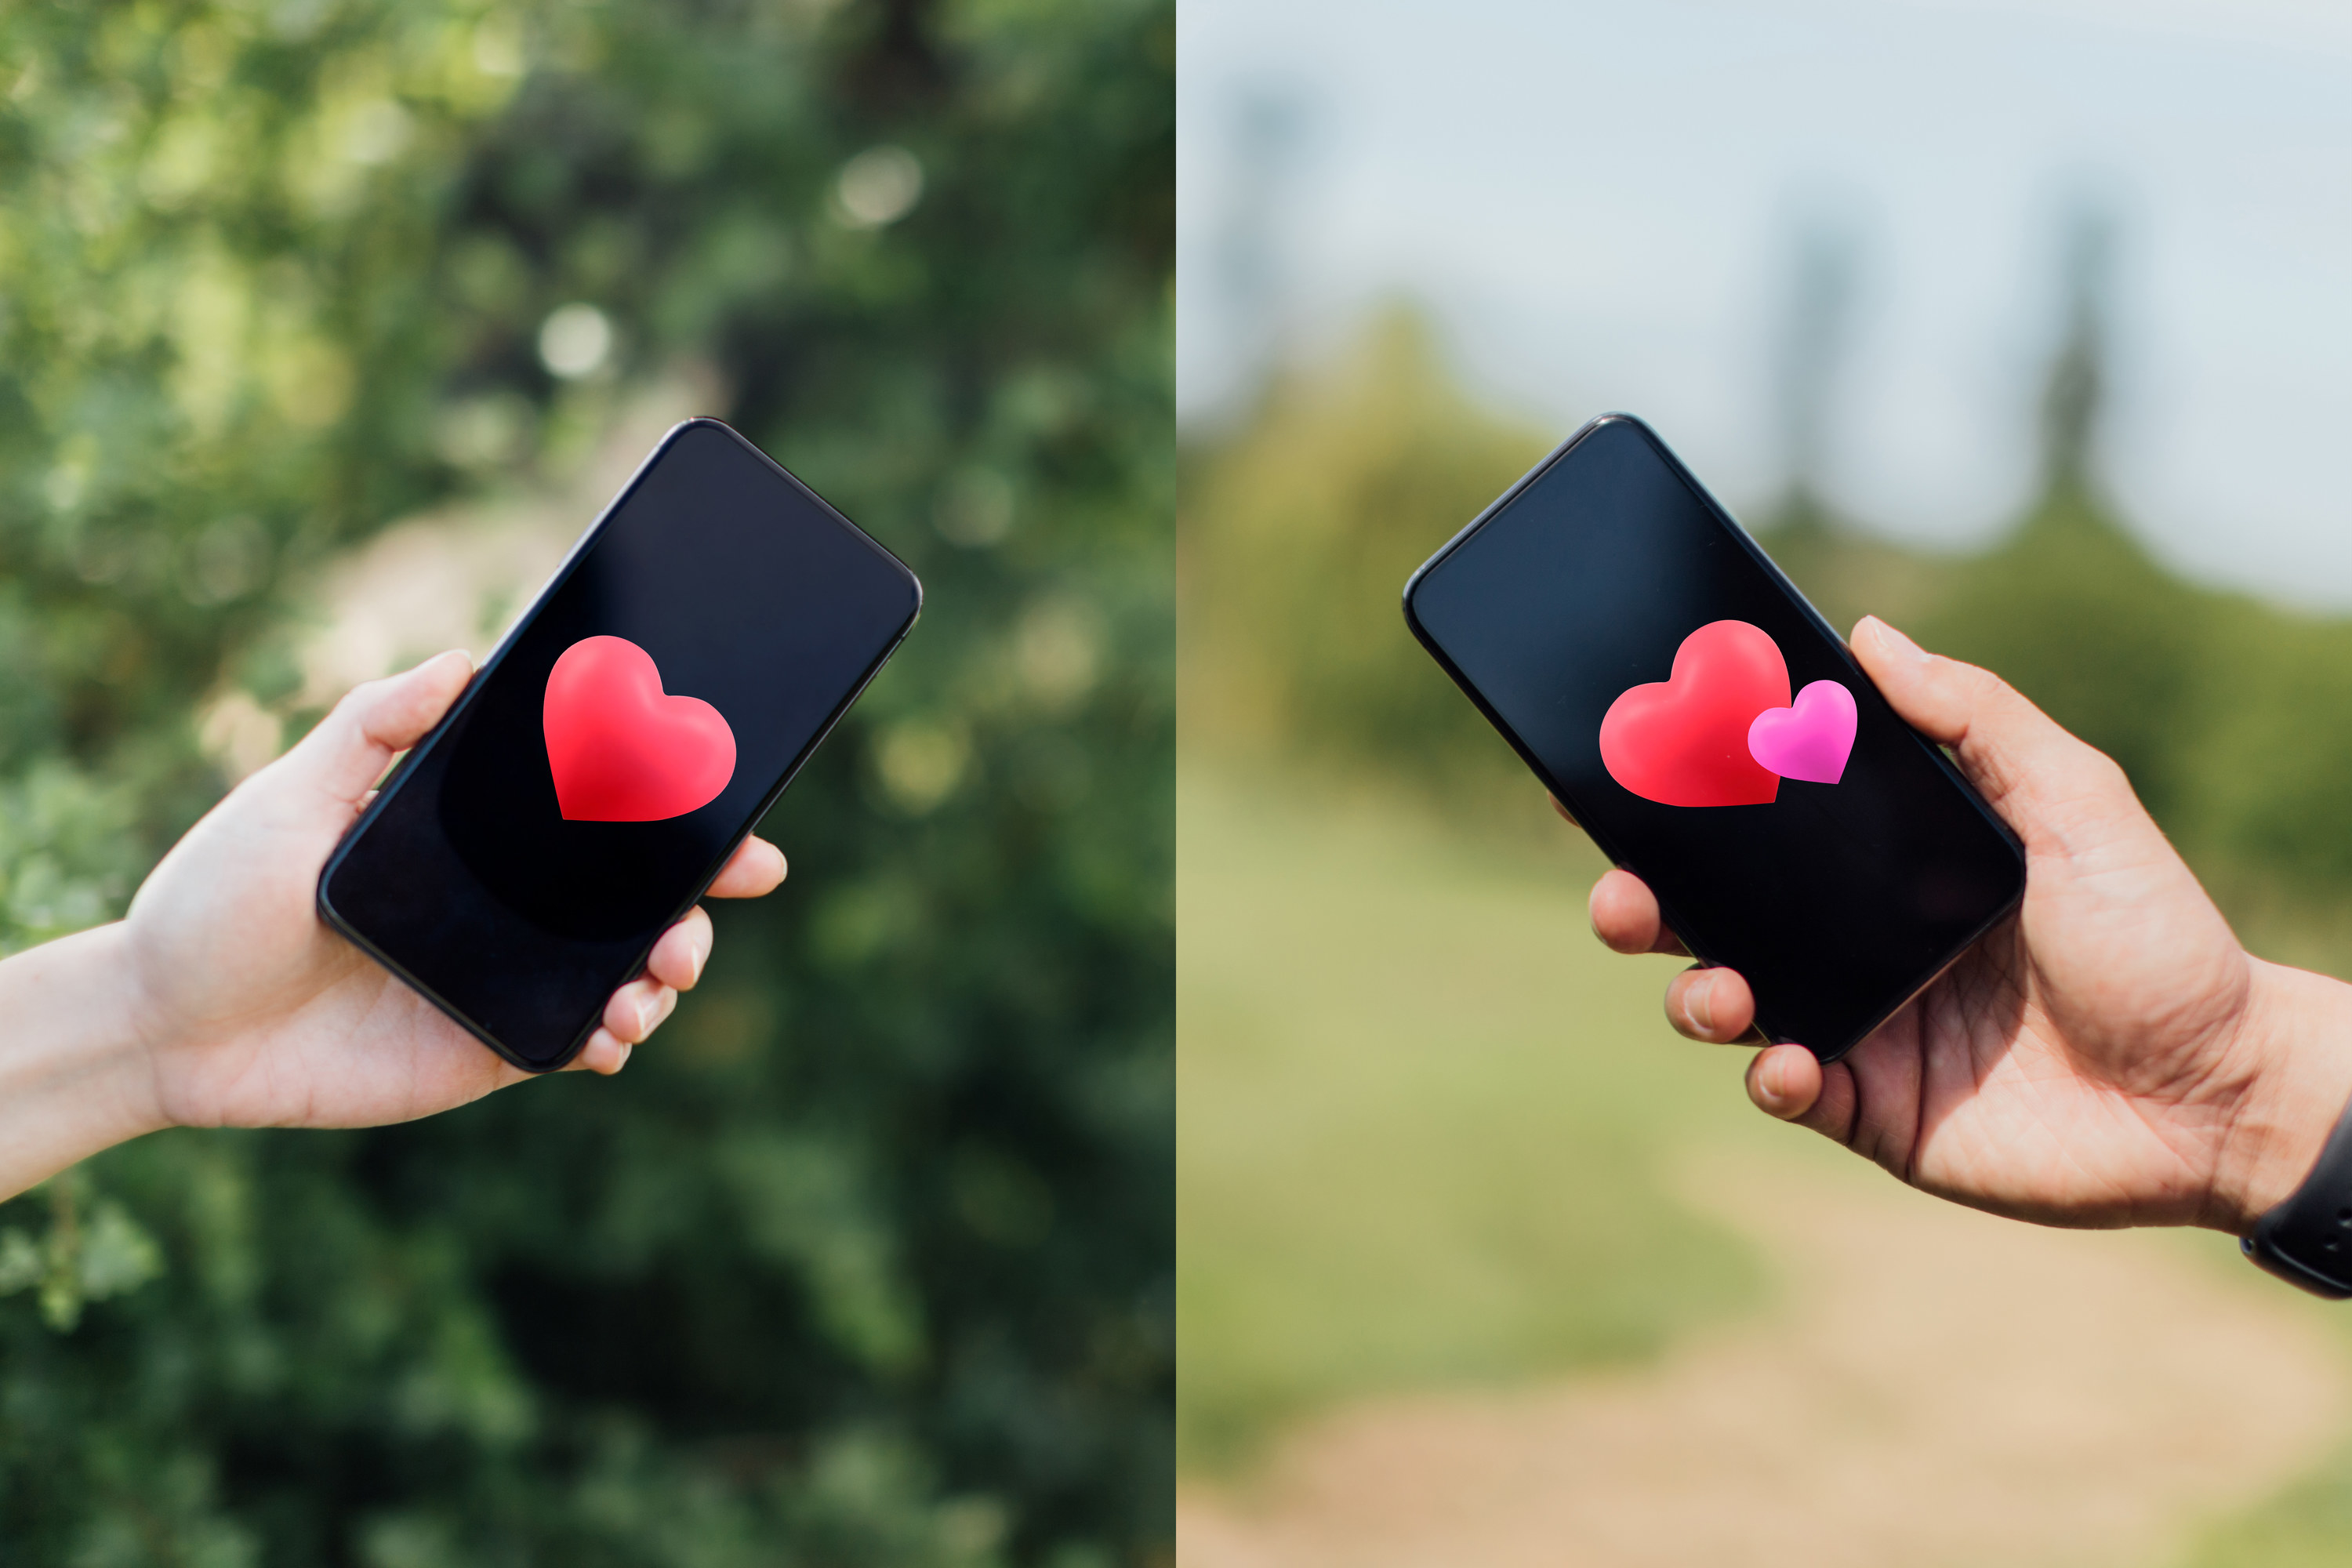 Couple holding their phones with hearts on the screens